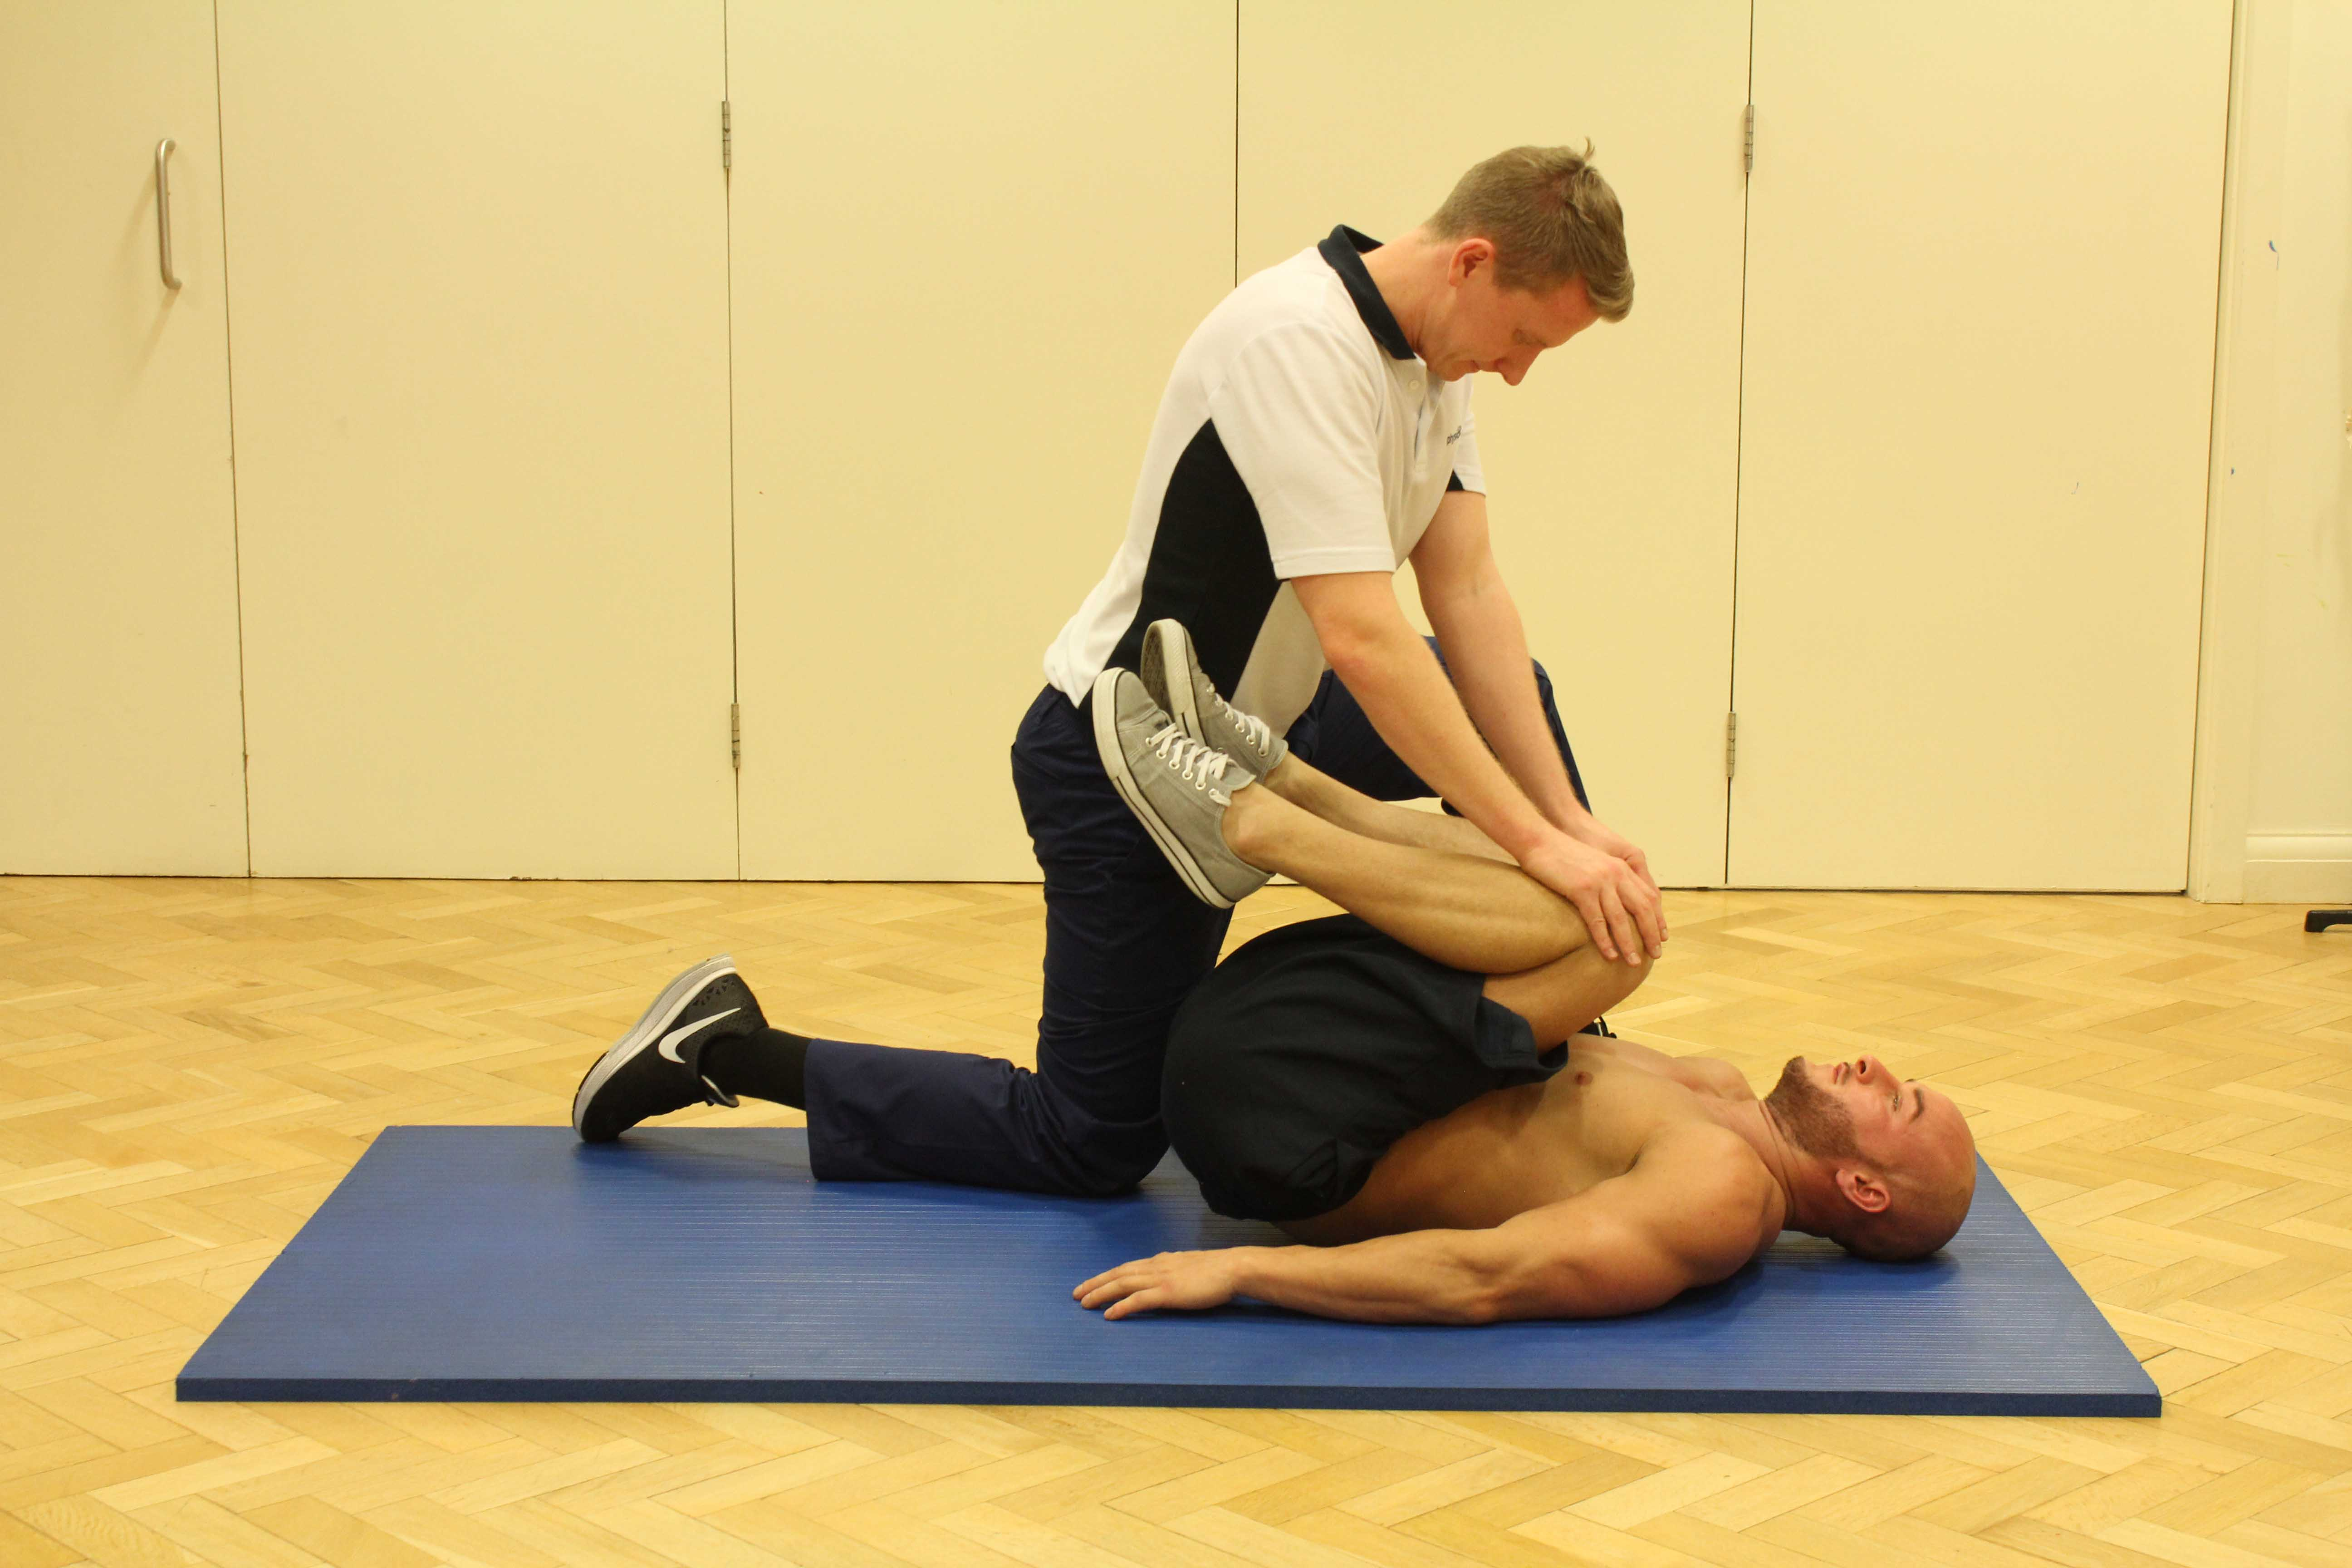 Passive stretch of the lower back muscles performed by MSK physiotherapist